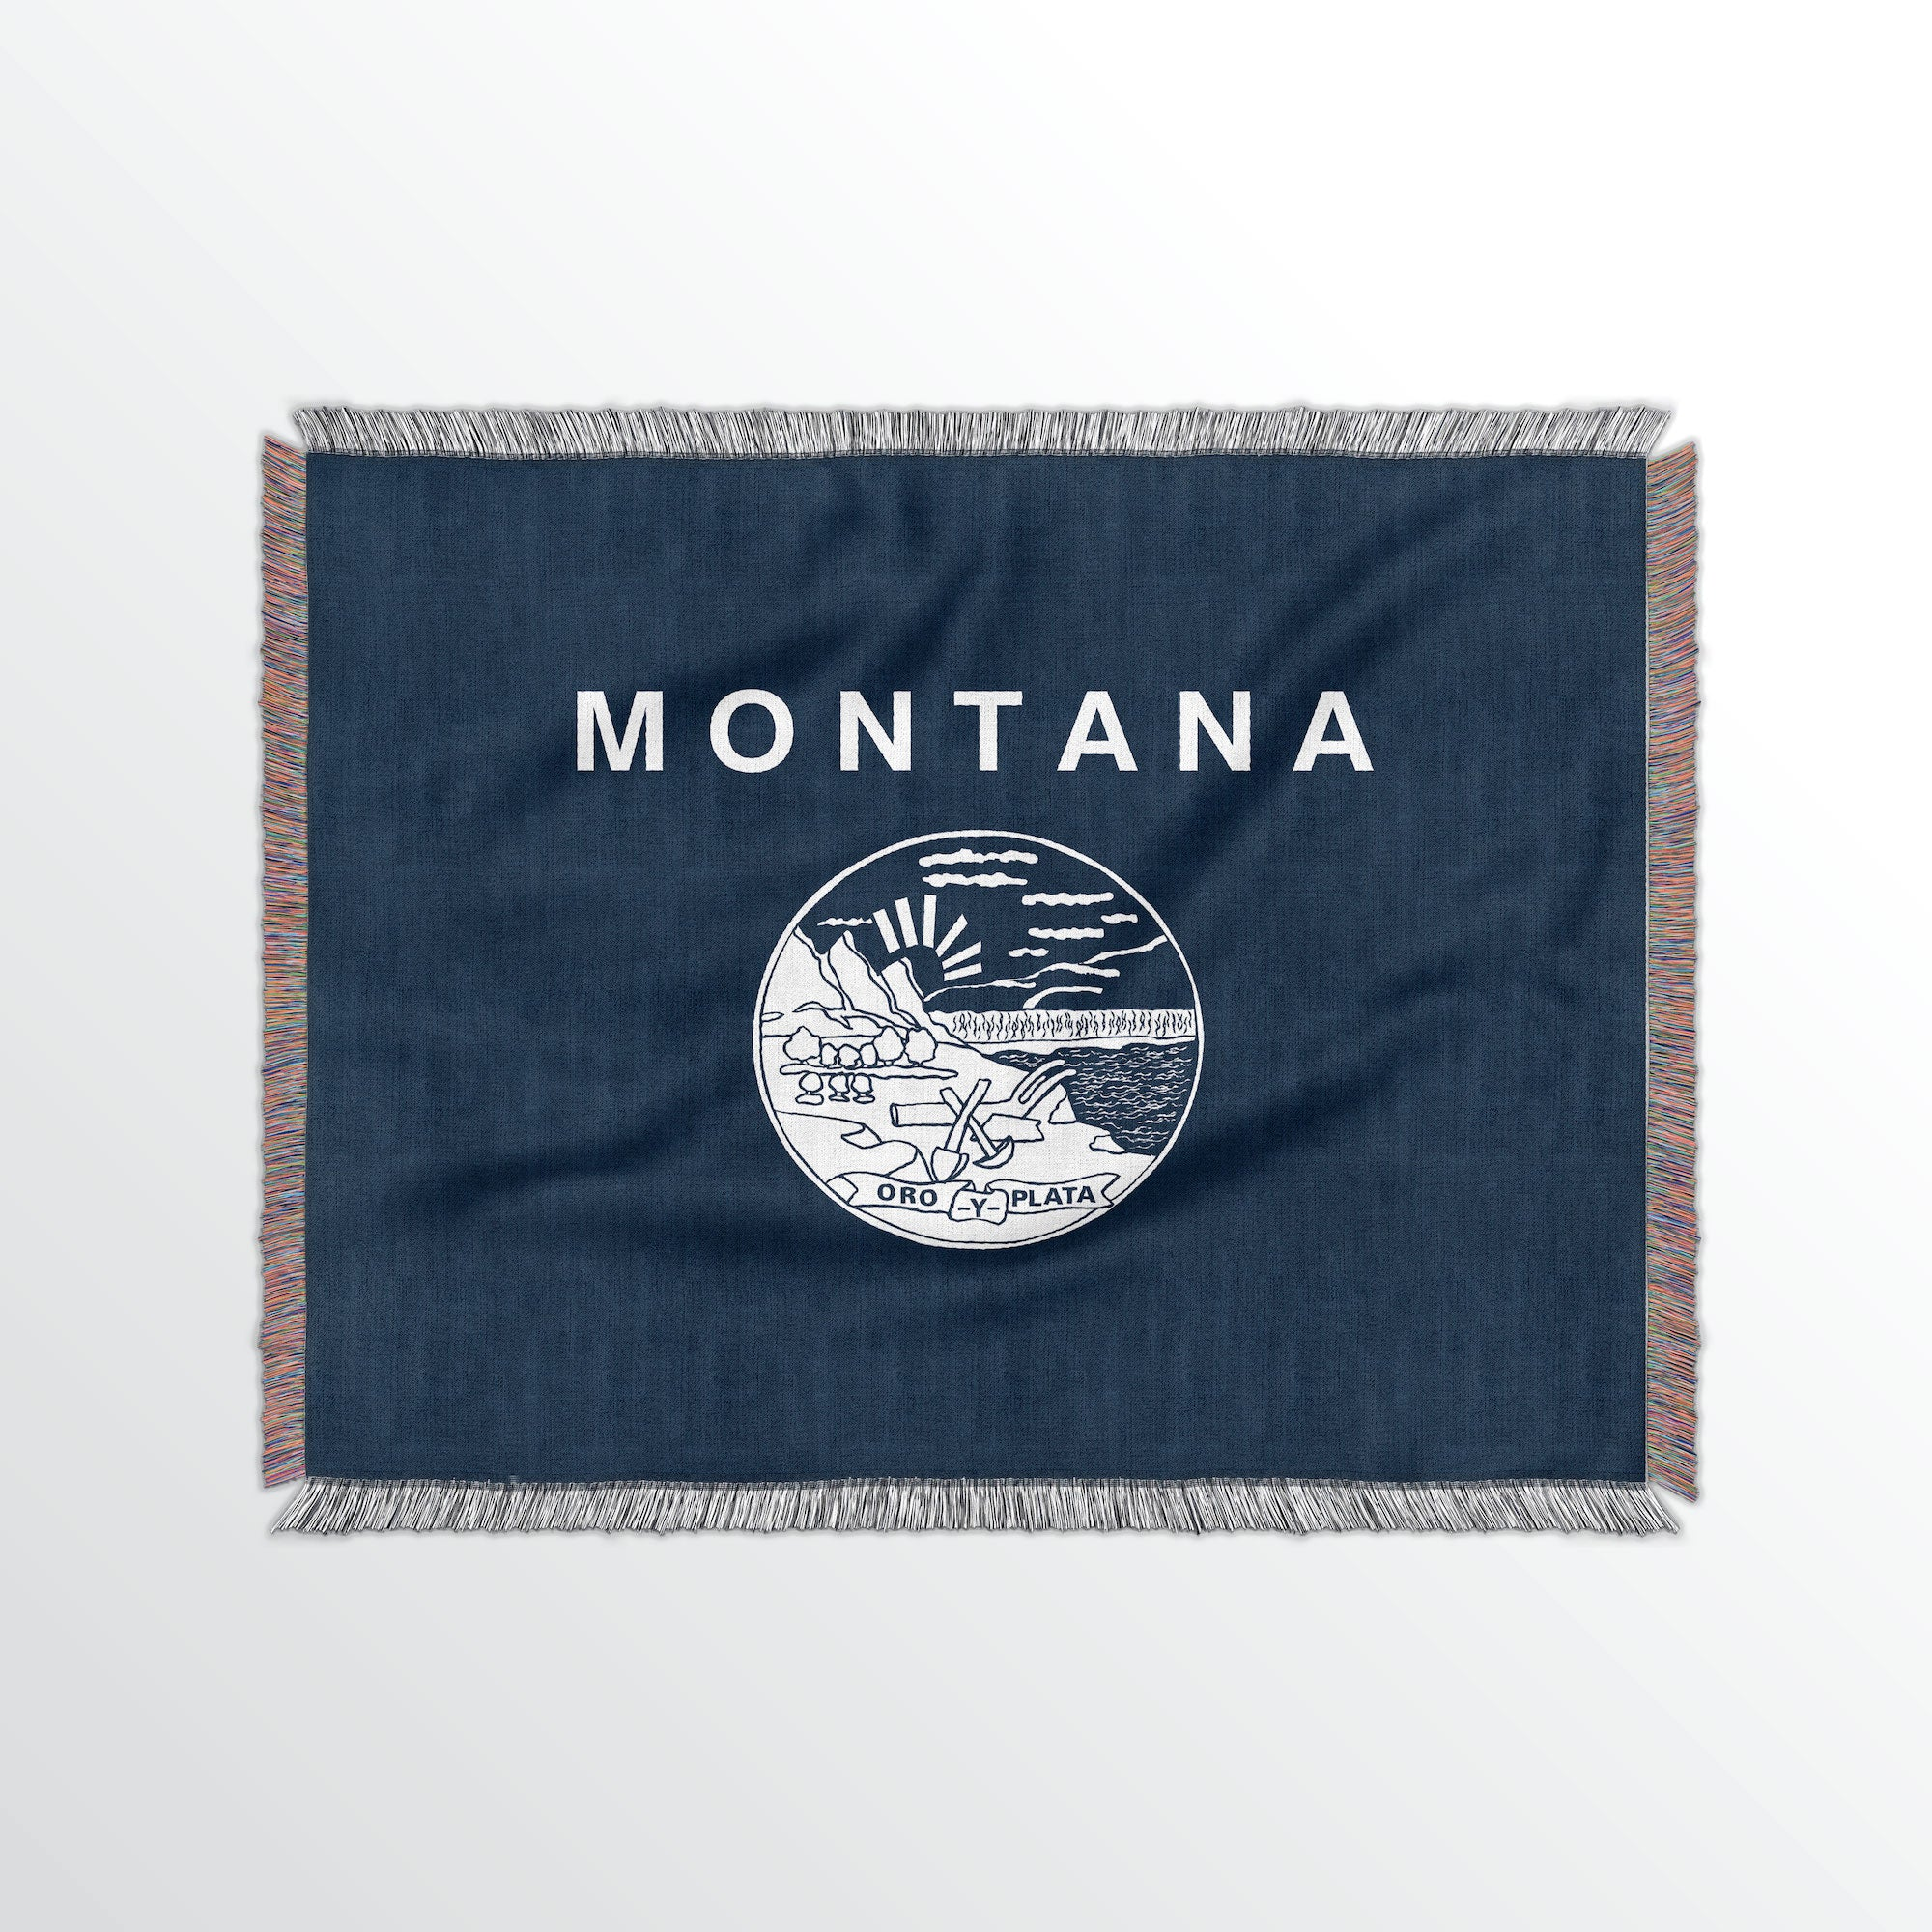 Montana State Woven Cotton Blanet - Point Two Design